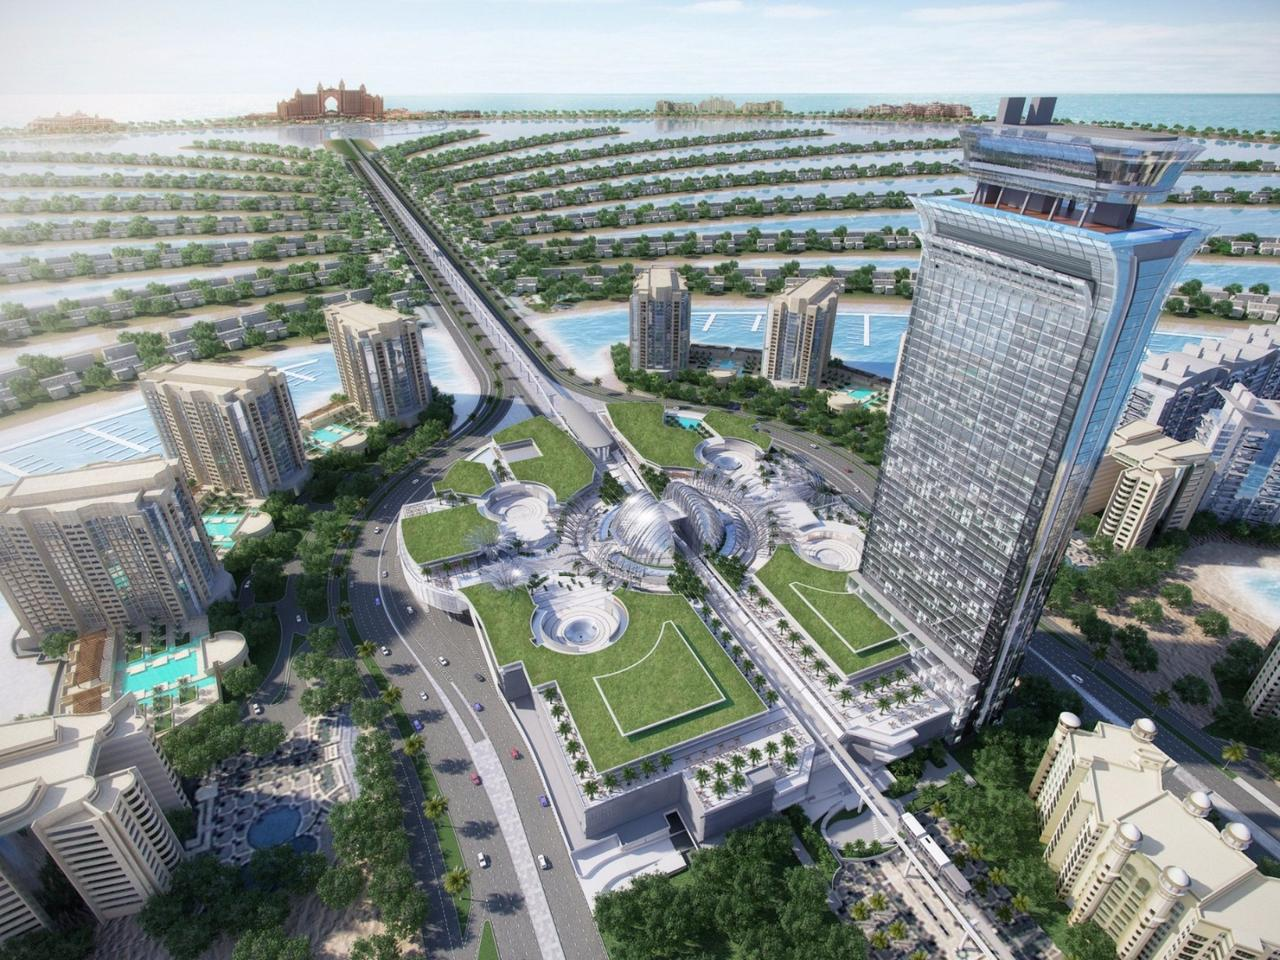 Hotel guests will have easy access to the 1,100,000-sq ft (102,193-sq m) Al Ittihad Park, in which there are over 60 types of indigenous plants